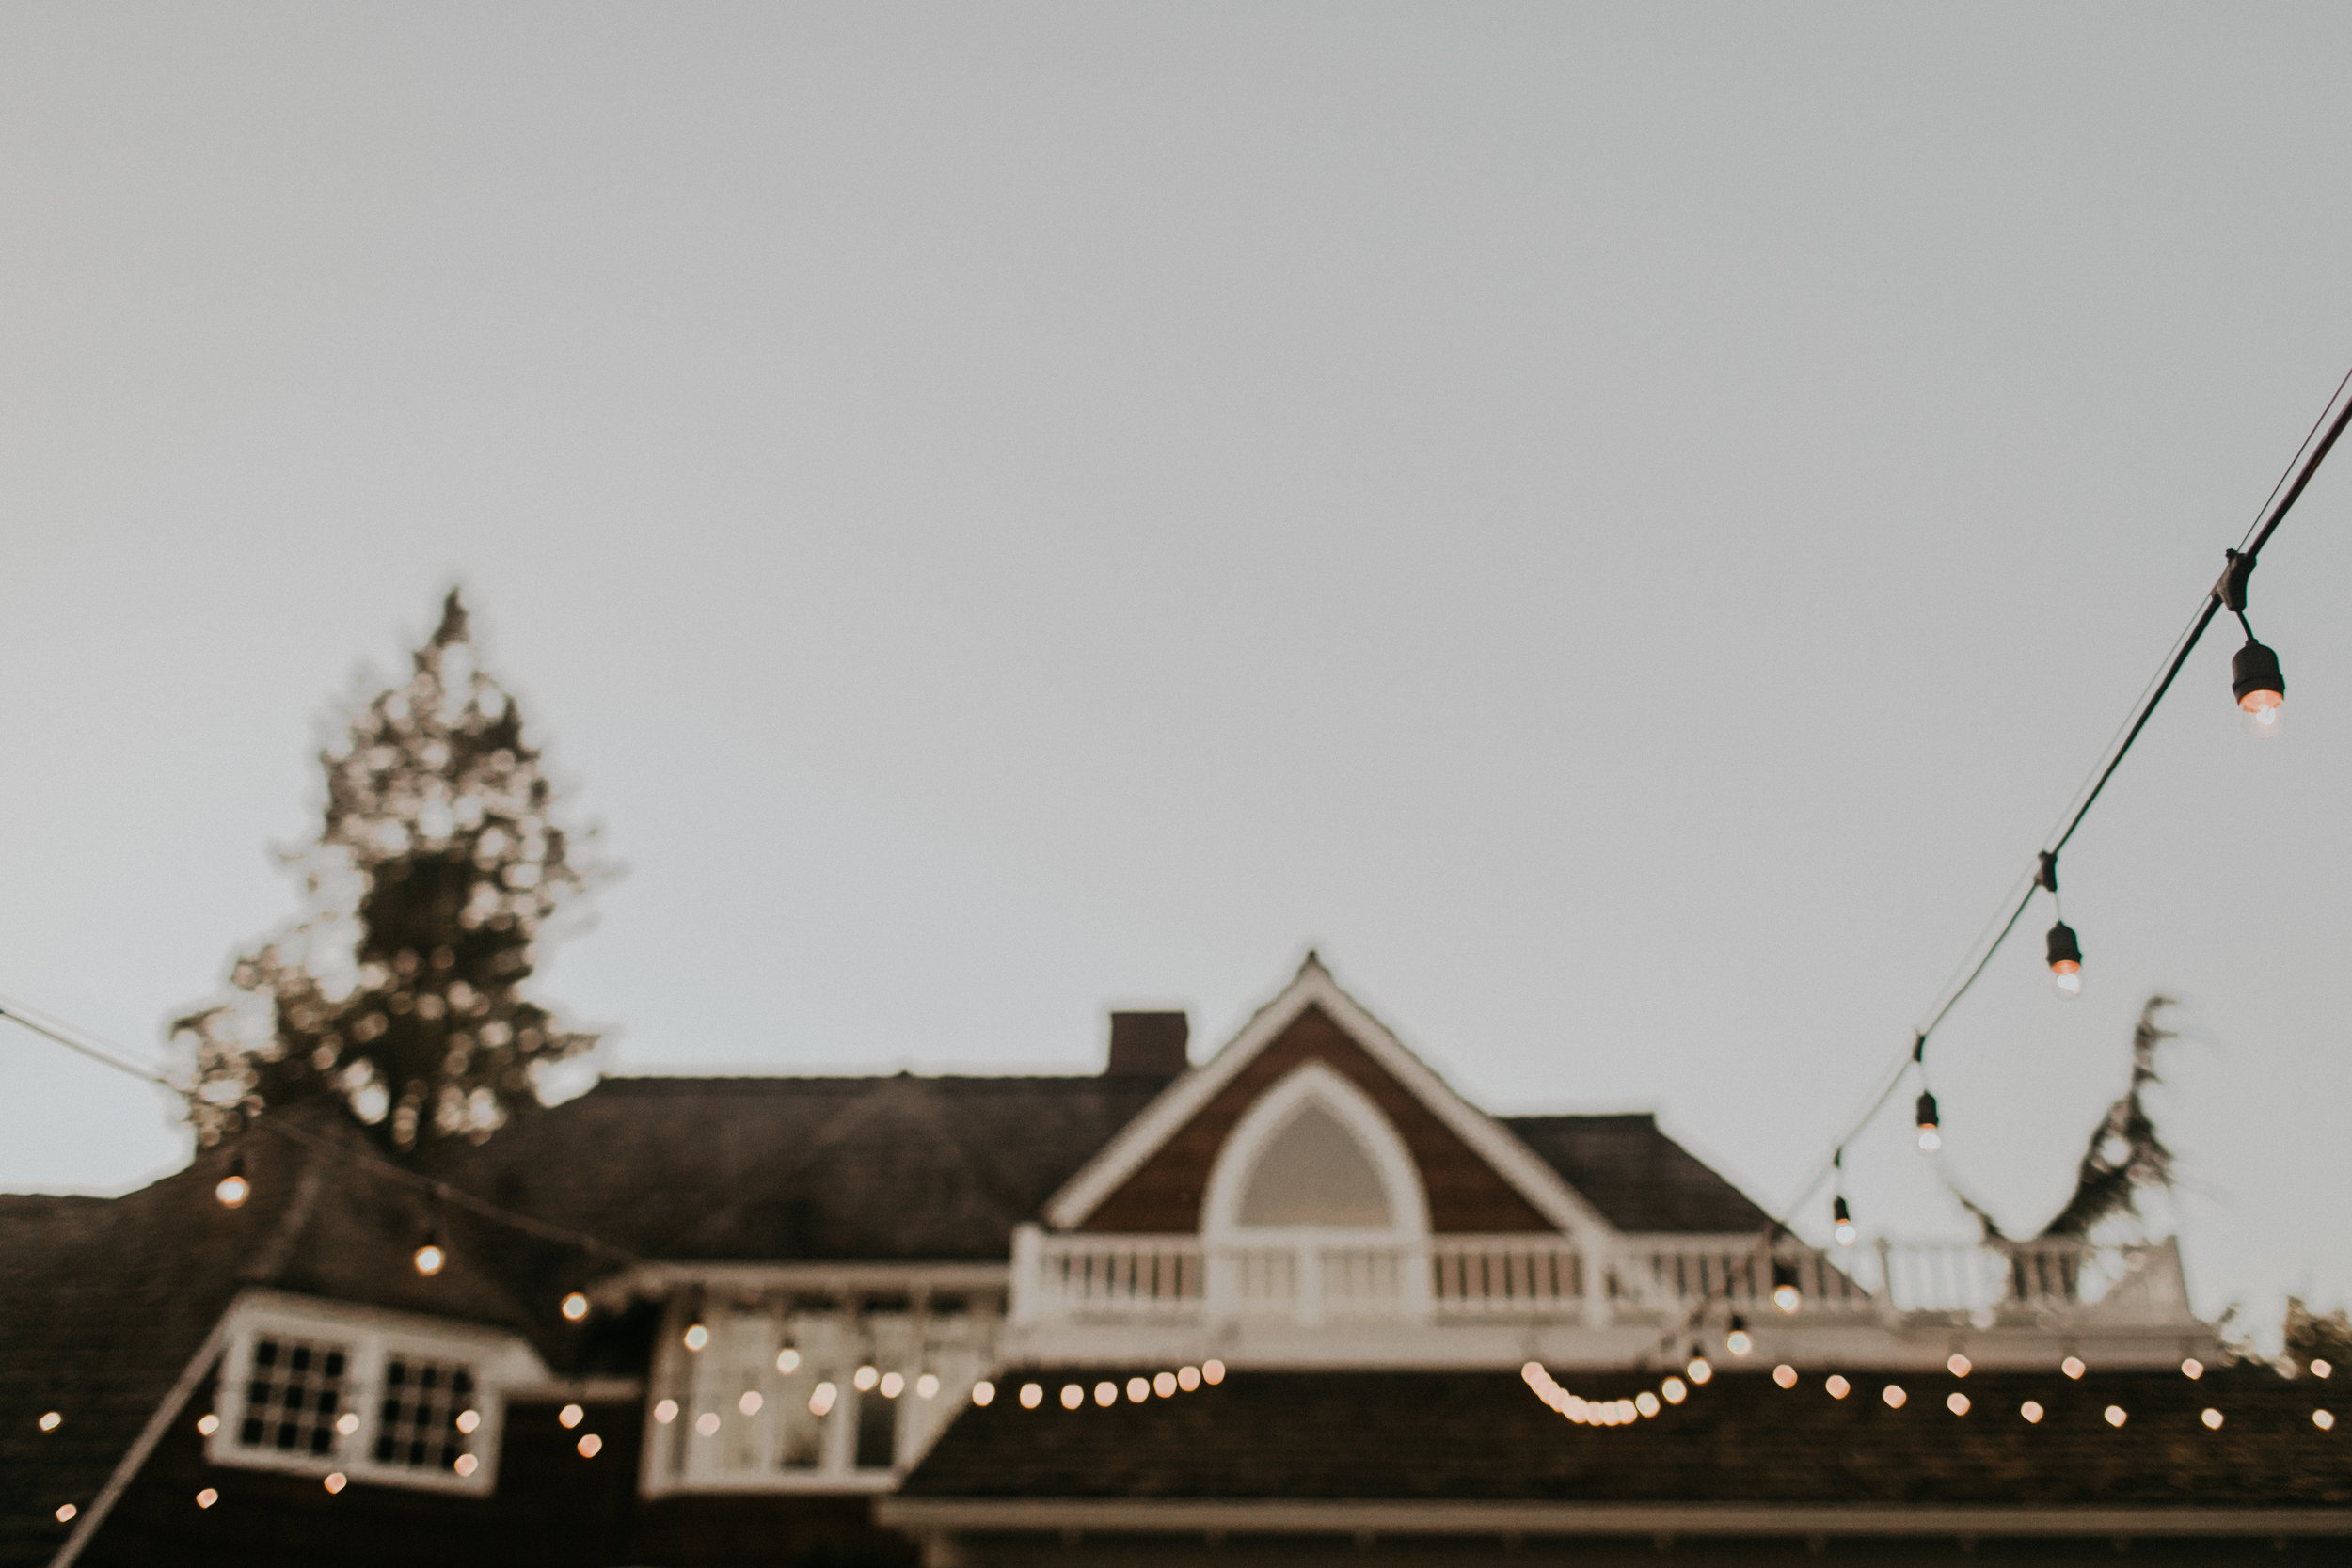 Laurel_Creek_Manor_Sumner_Washington_Wedding_Makenzie+Clark-1243.jpg